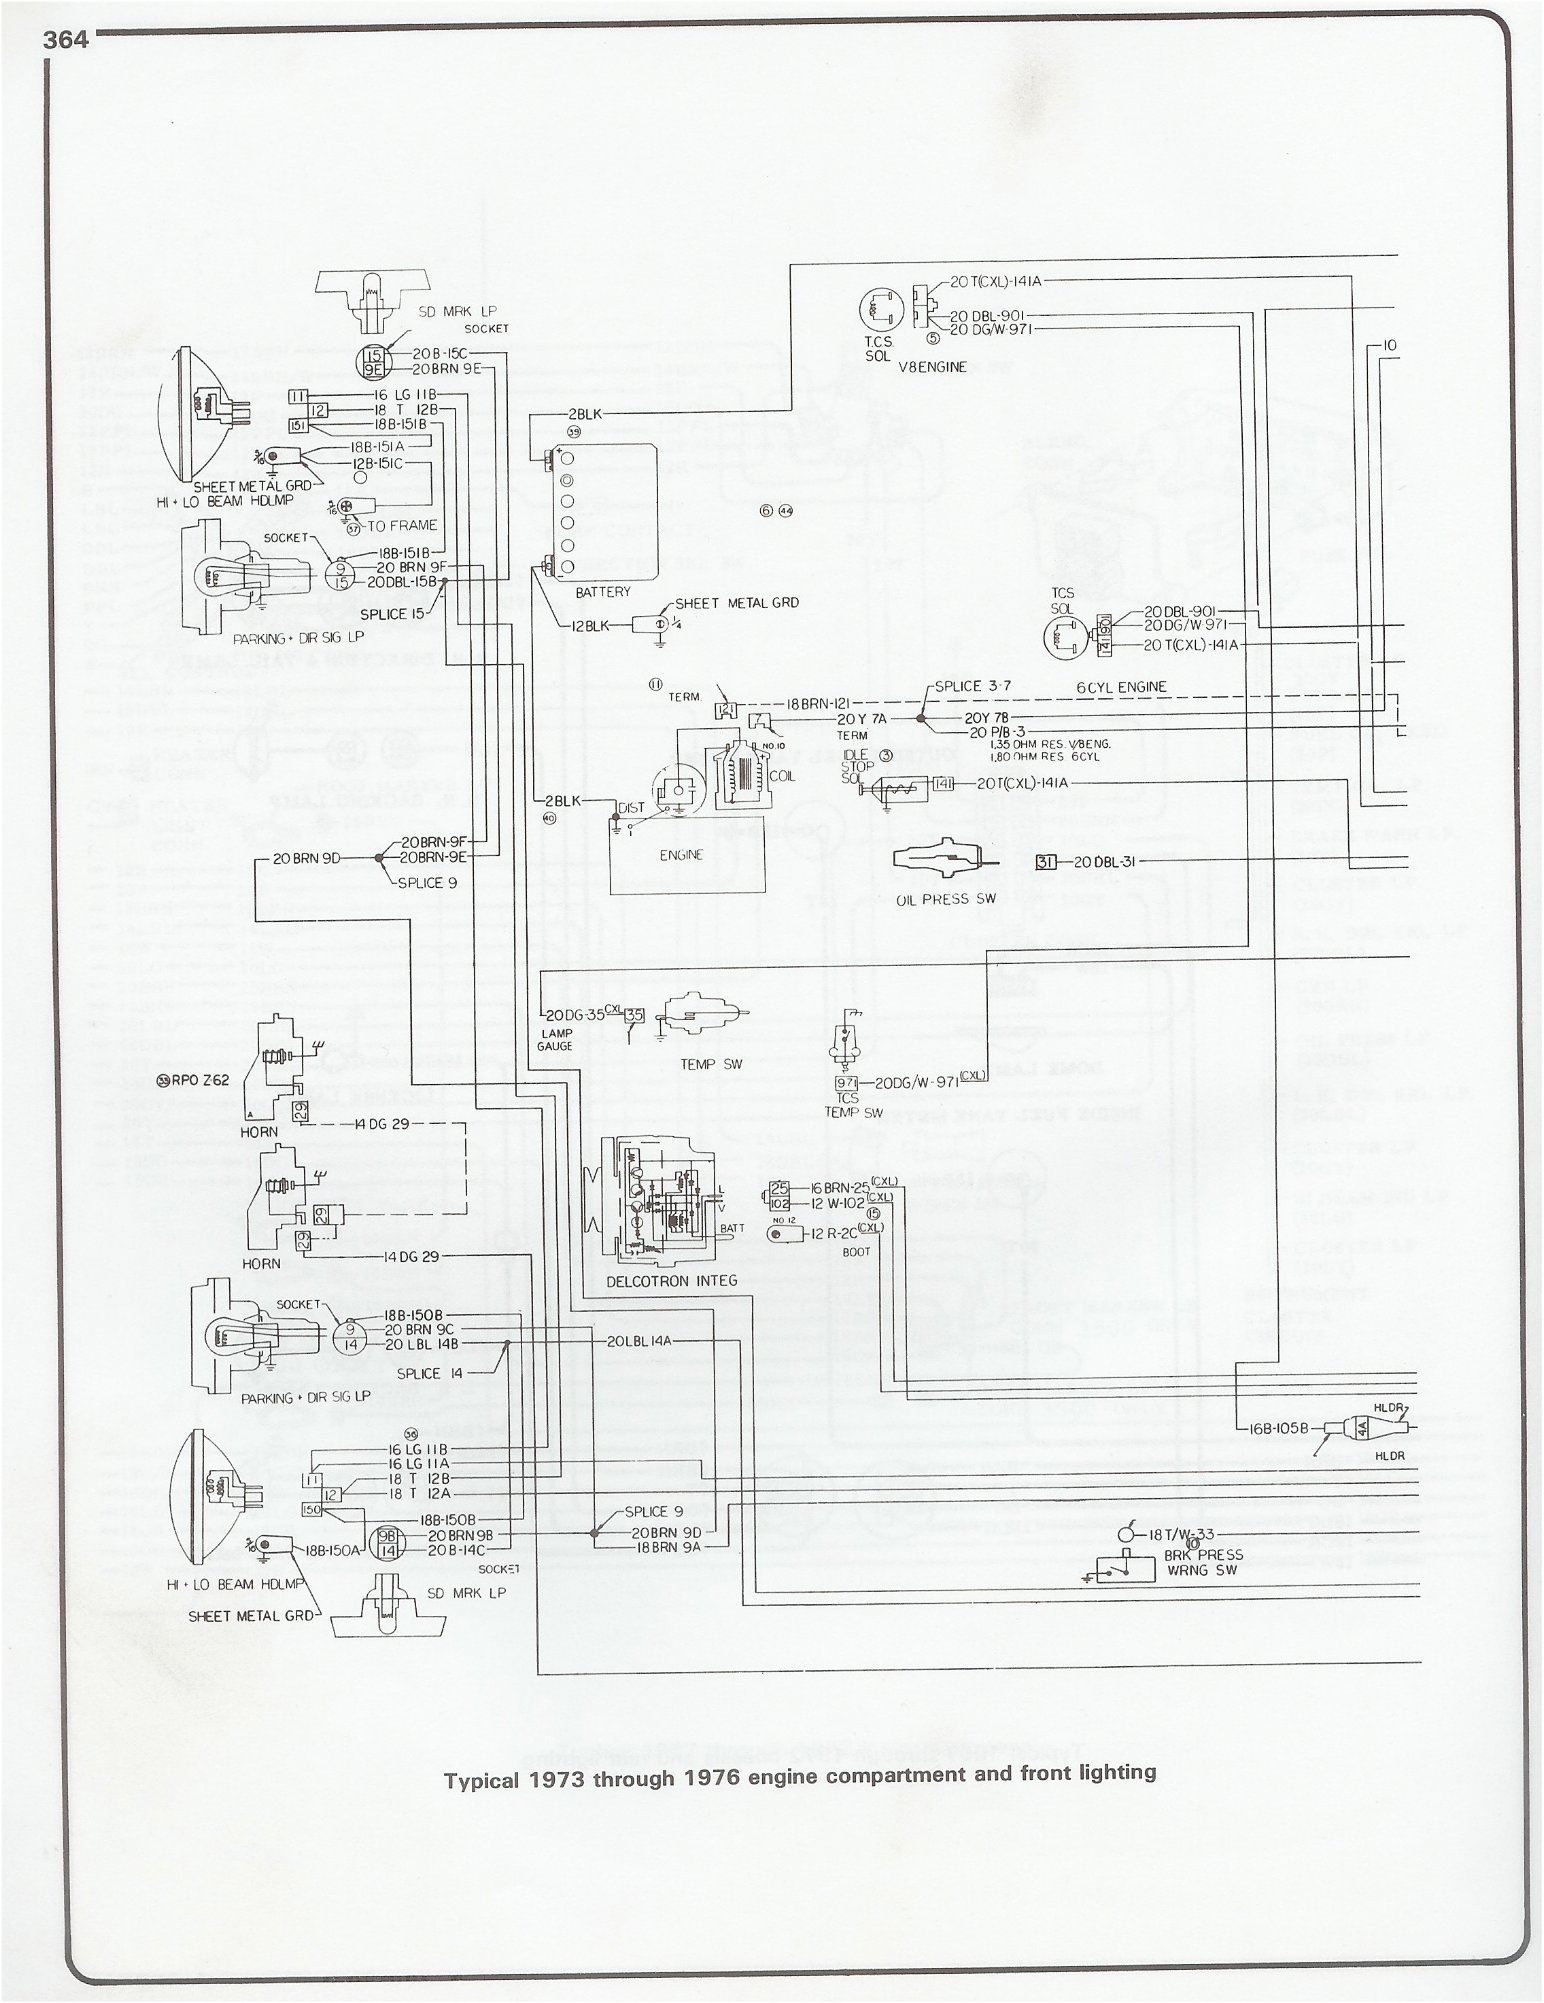 hight resolution of 73 76 engine and front lighting complete 73 87 wiring diagrams